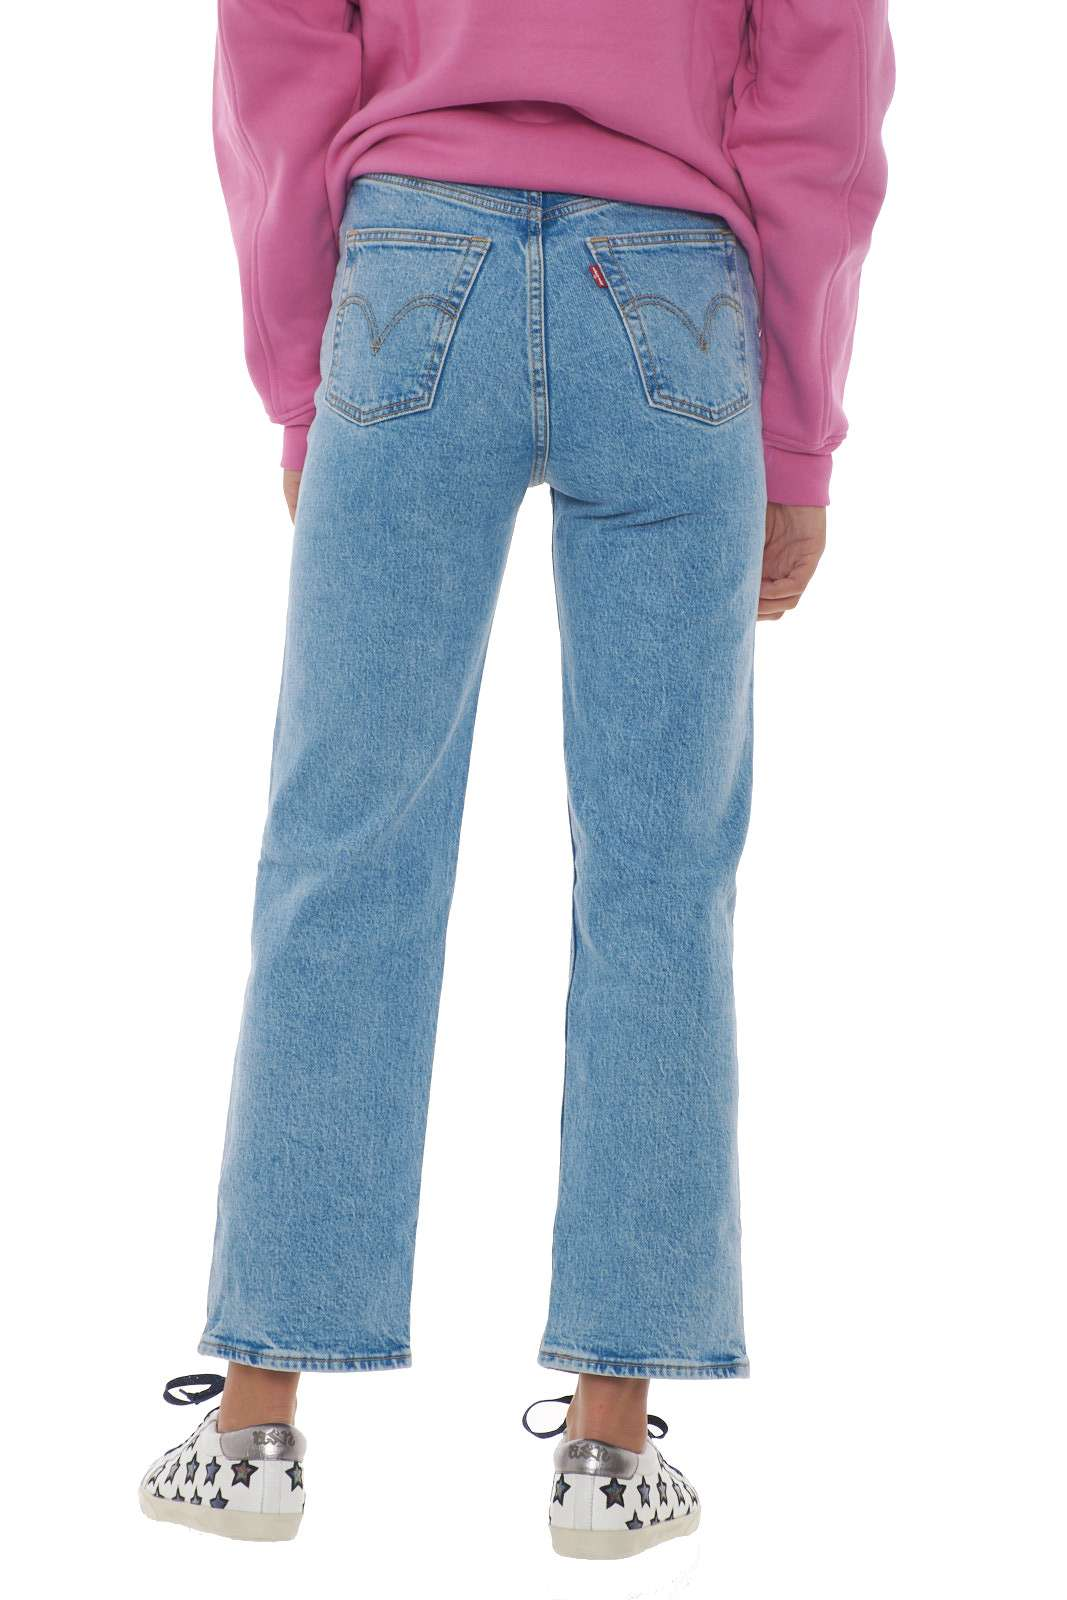 https://www.parmax.com/media/catalog/product/a/i/AI-outlet_parmax-denim-donna-Levis-72693%200023-C.jpg